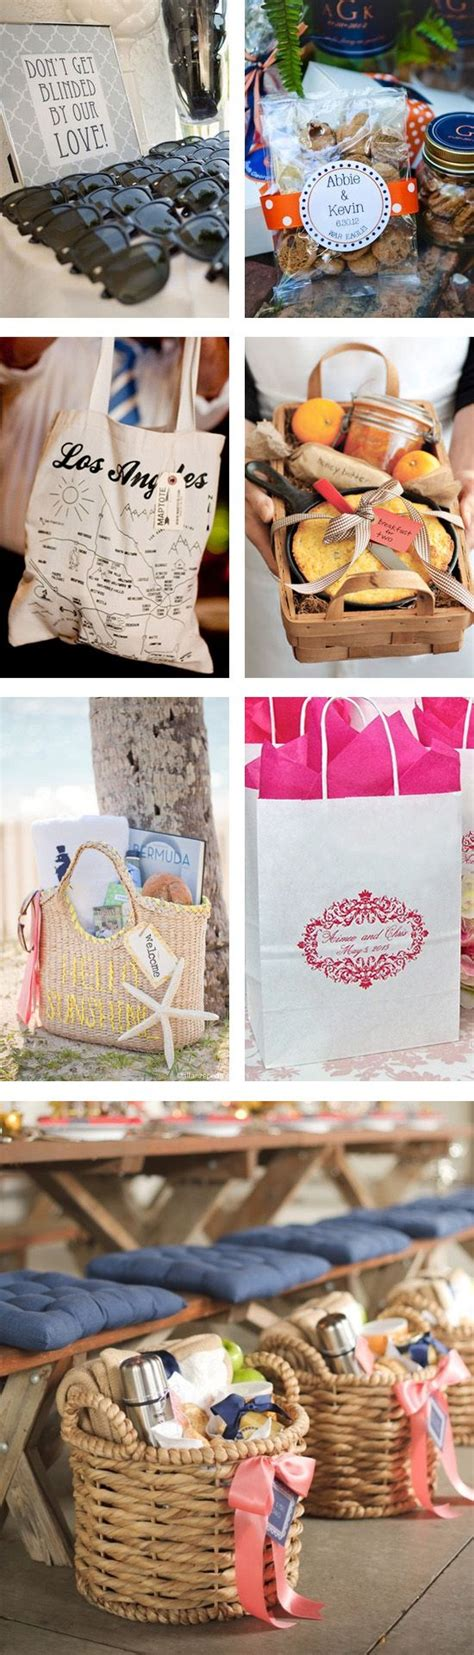 Welcome Bags Wedding T Bags And Hangover Helpers On